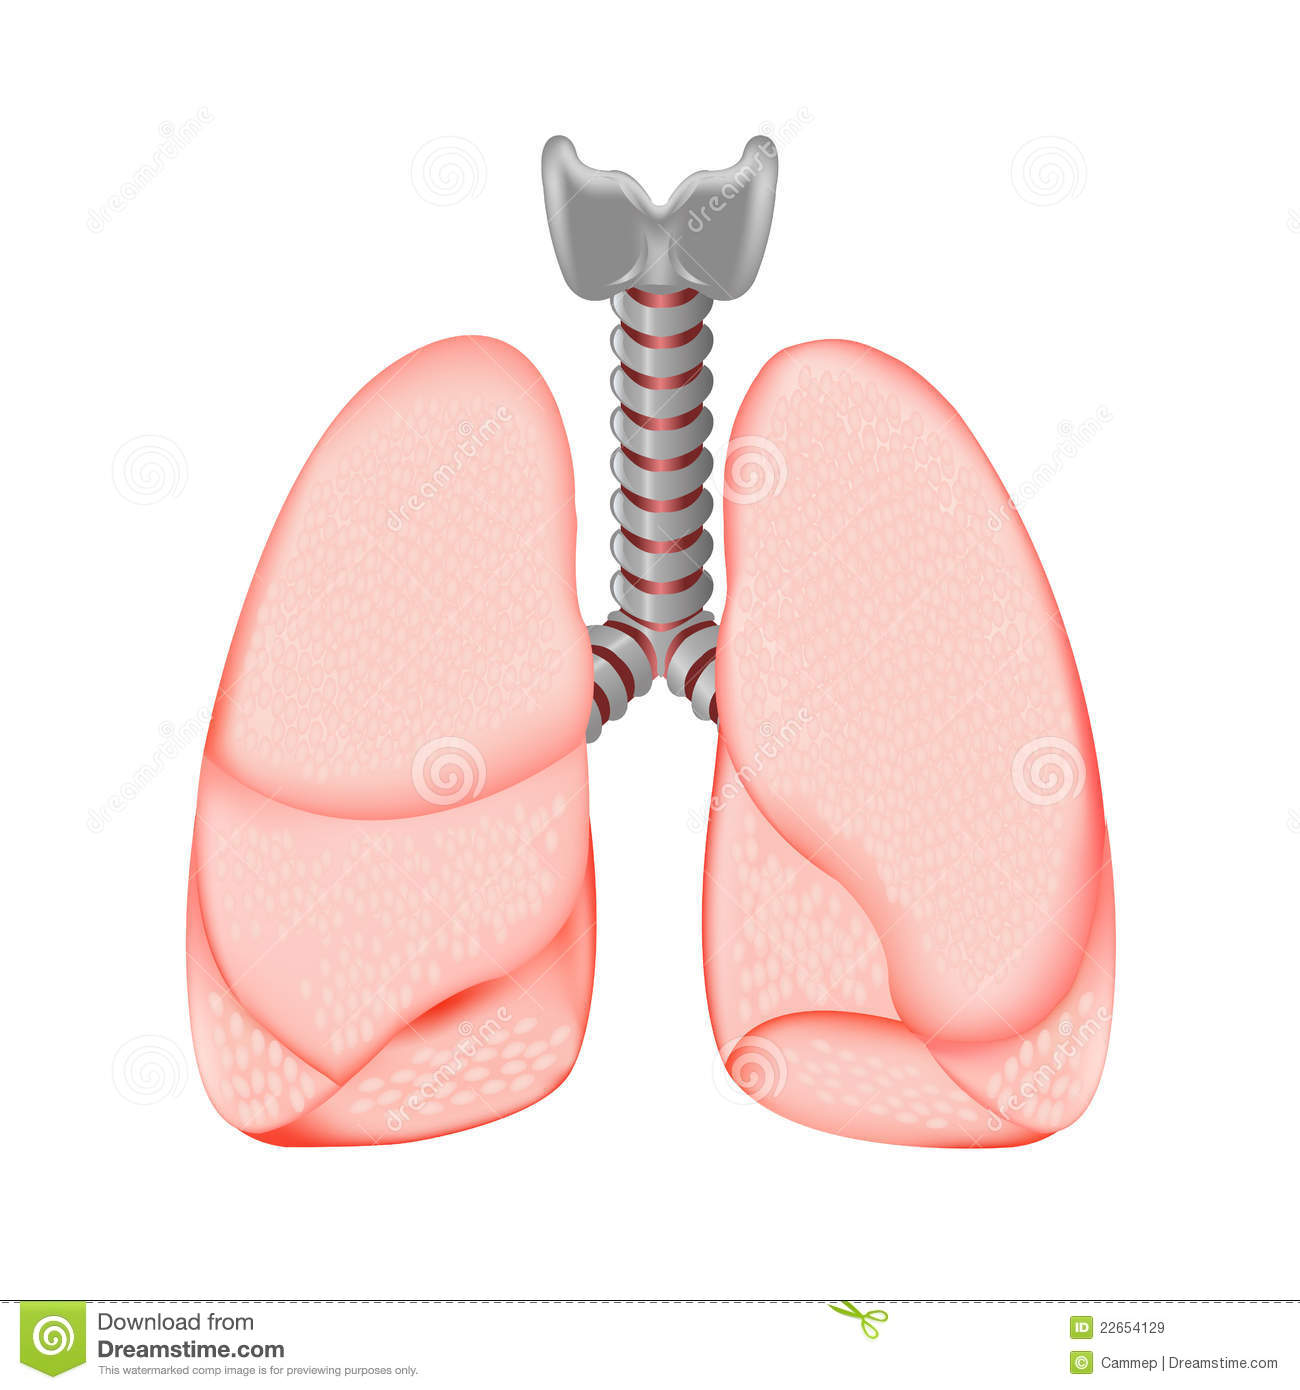 Human Lungs, Isolated On White Background, Vector Illustration.